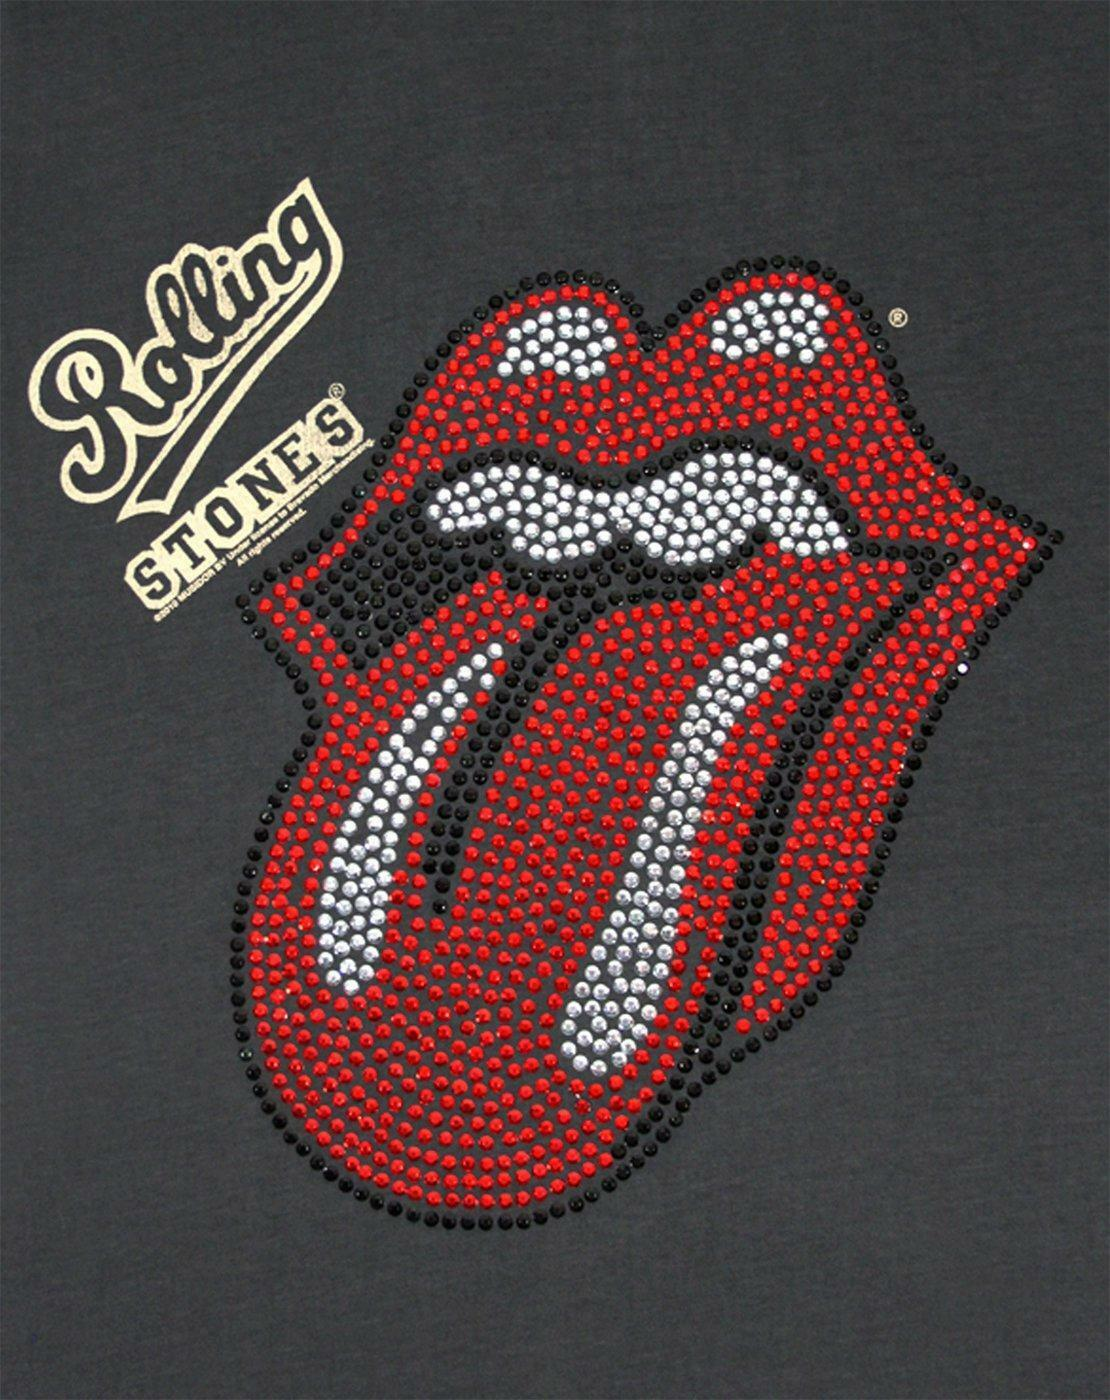 Amplified-Rolling-Stones-Diamante-Lick-Women-039-s-T-Shirt thumbnail 6